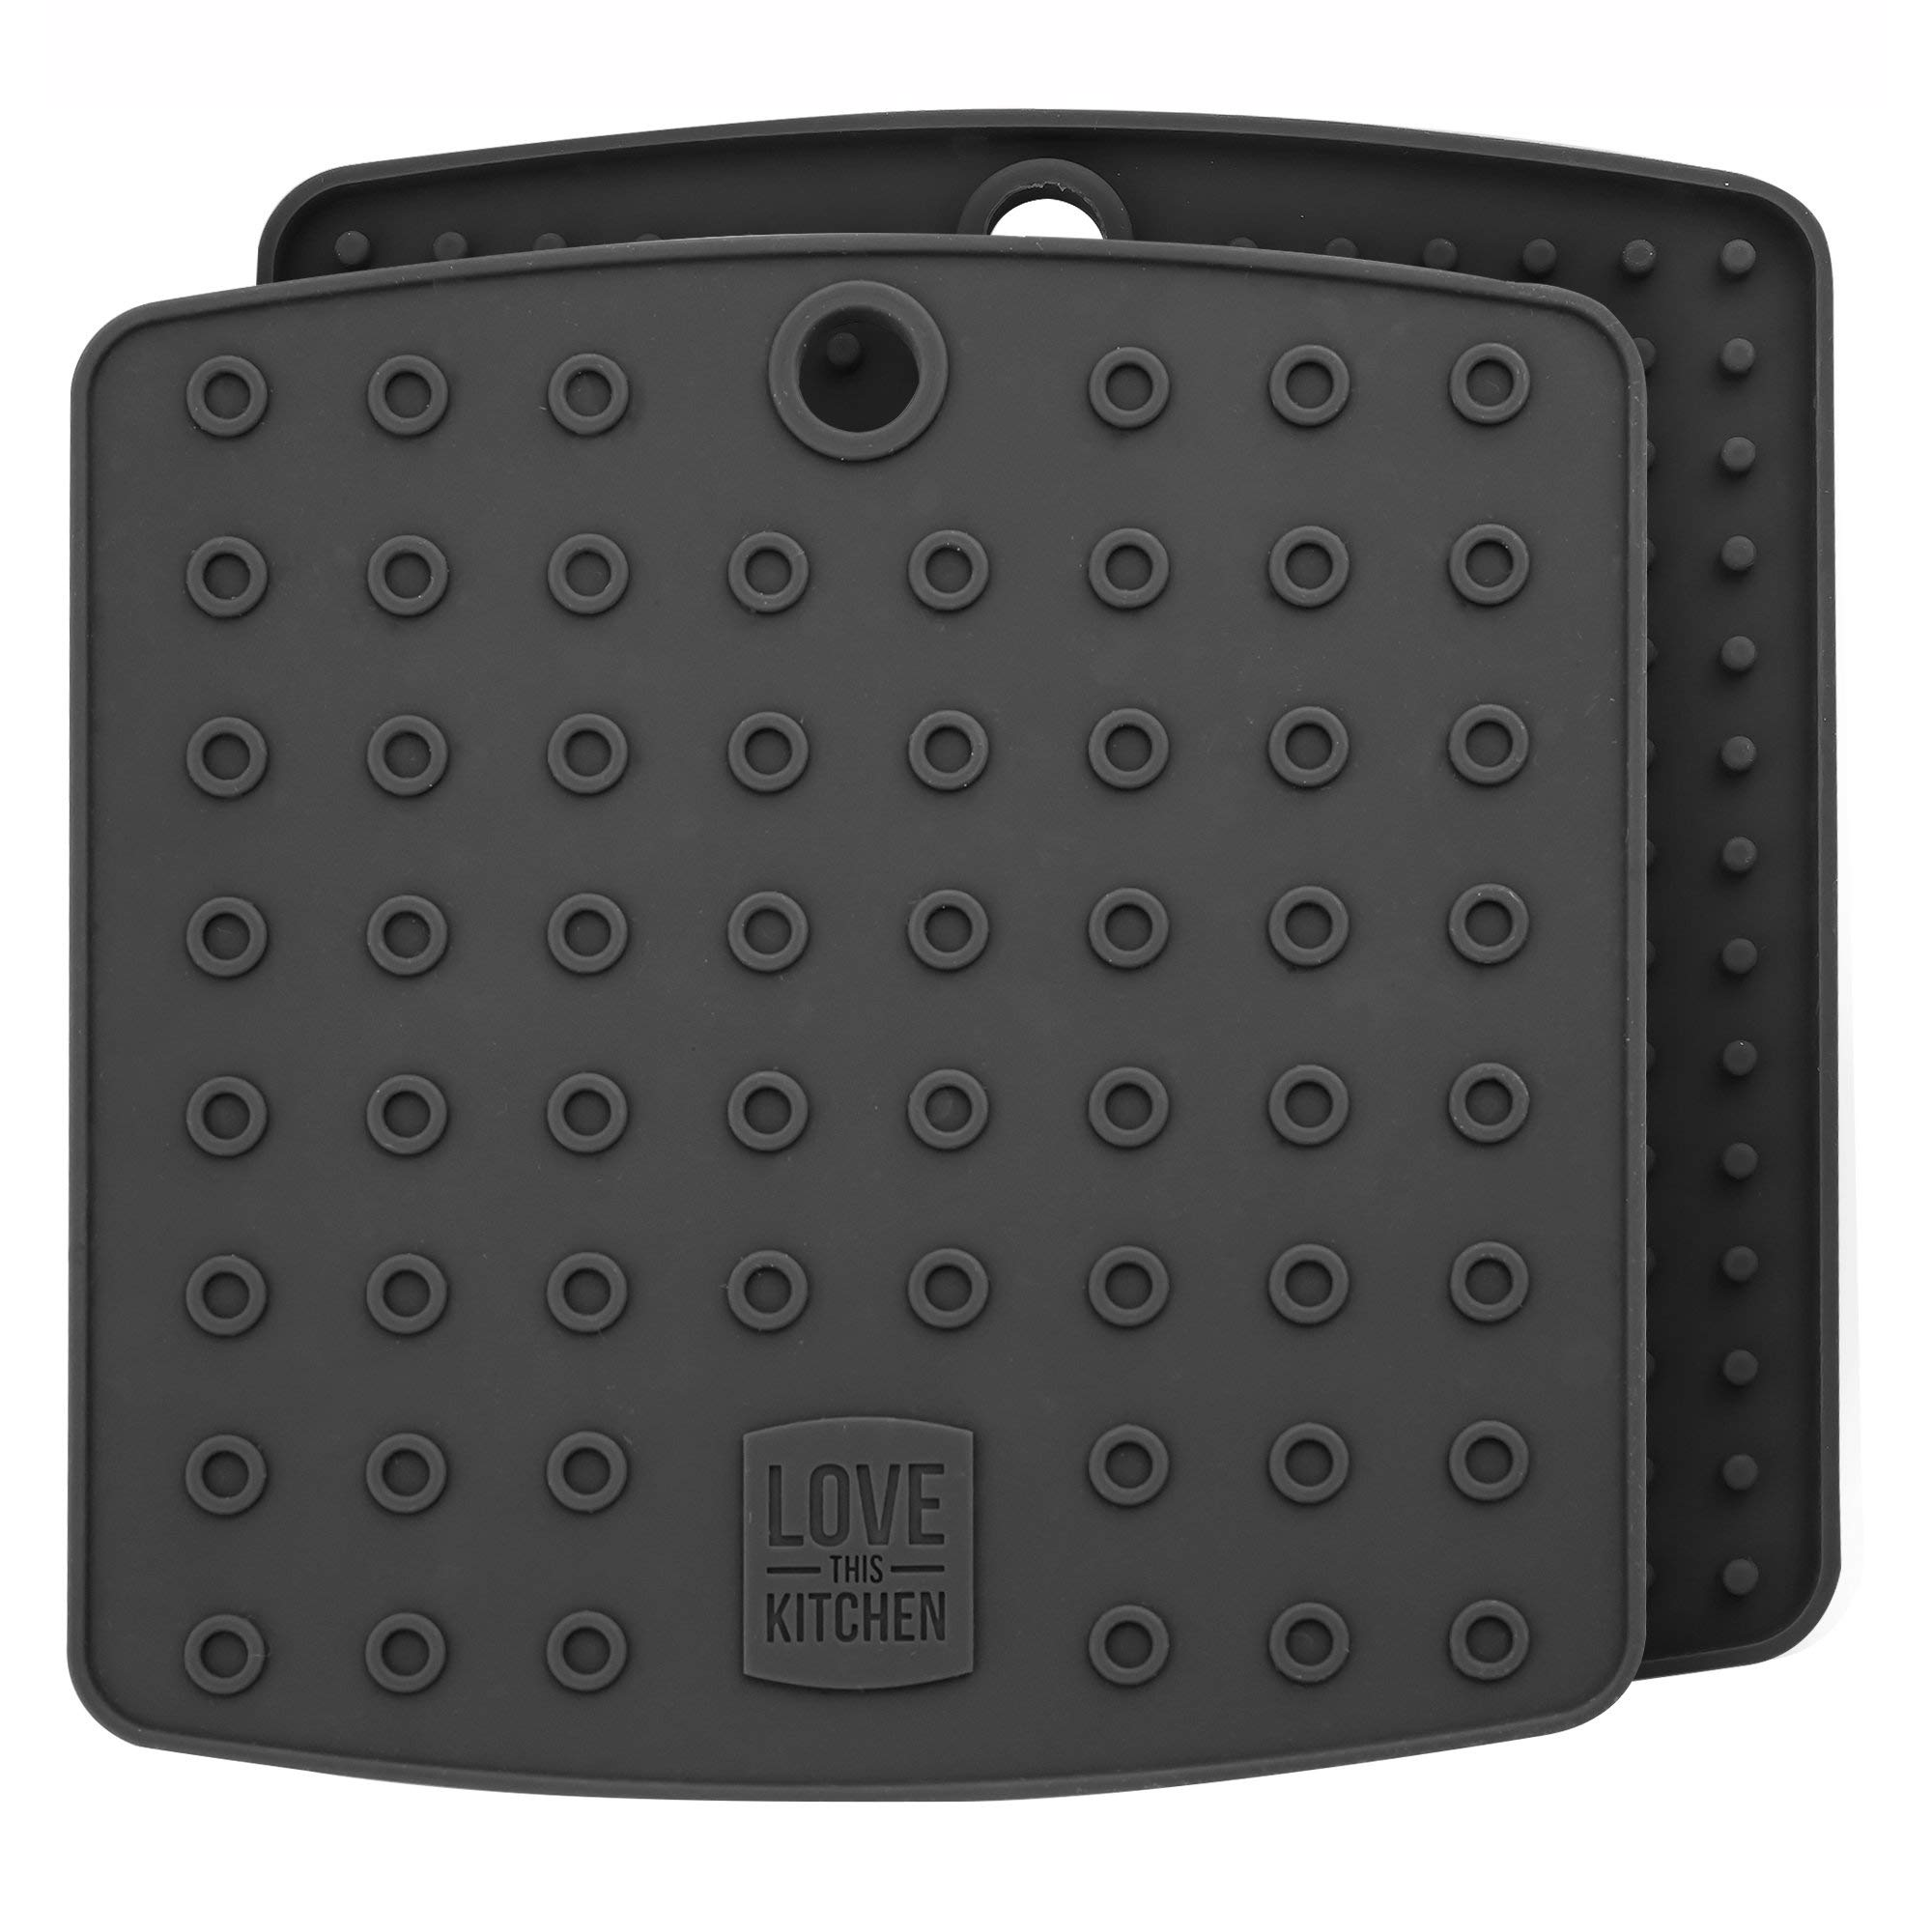 Premium Silicone Trivet Mats/Hot Pads, Pot Holders, Spoon Rest, Jar Opener & Coasters - Our 5 in 1 Kitchen Tool is Heat Resistant to 442 °F, Thick & Flexible (7'' x 7'', Dark Gray, 1 Pair) by Love This Kitchen (Image #1)